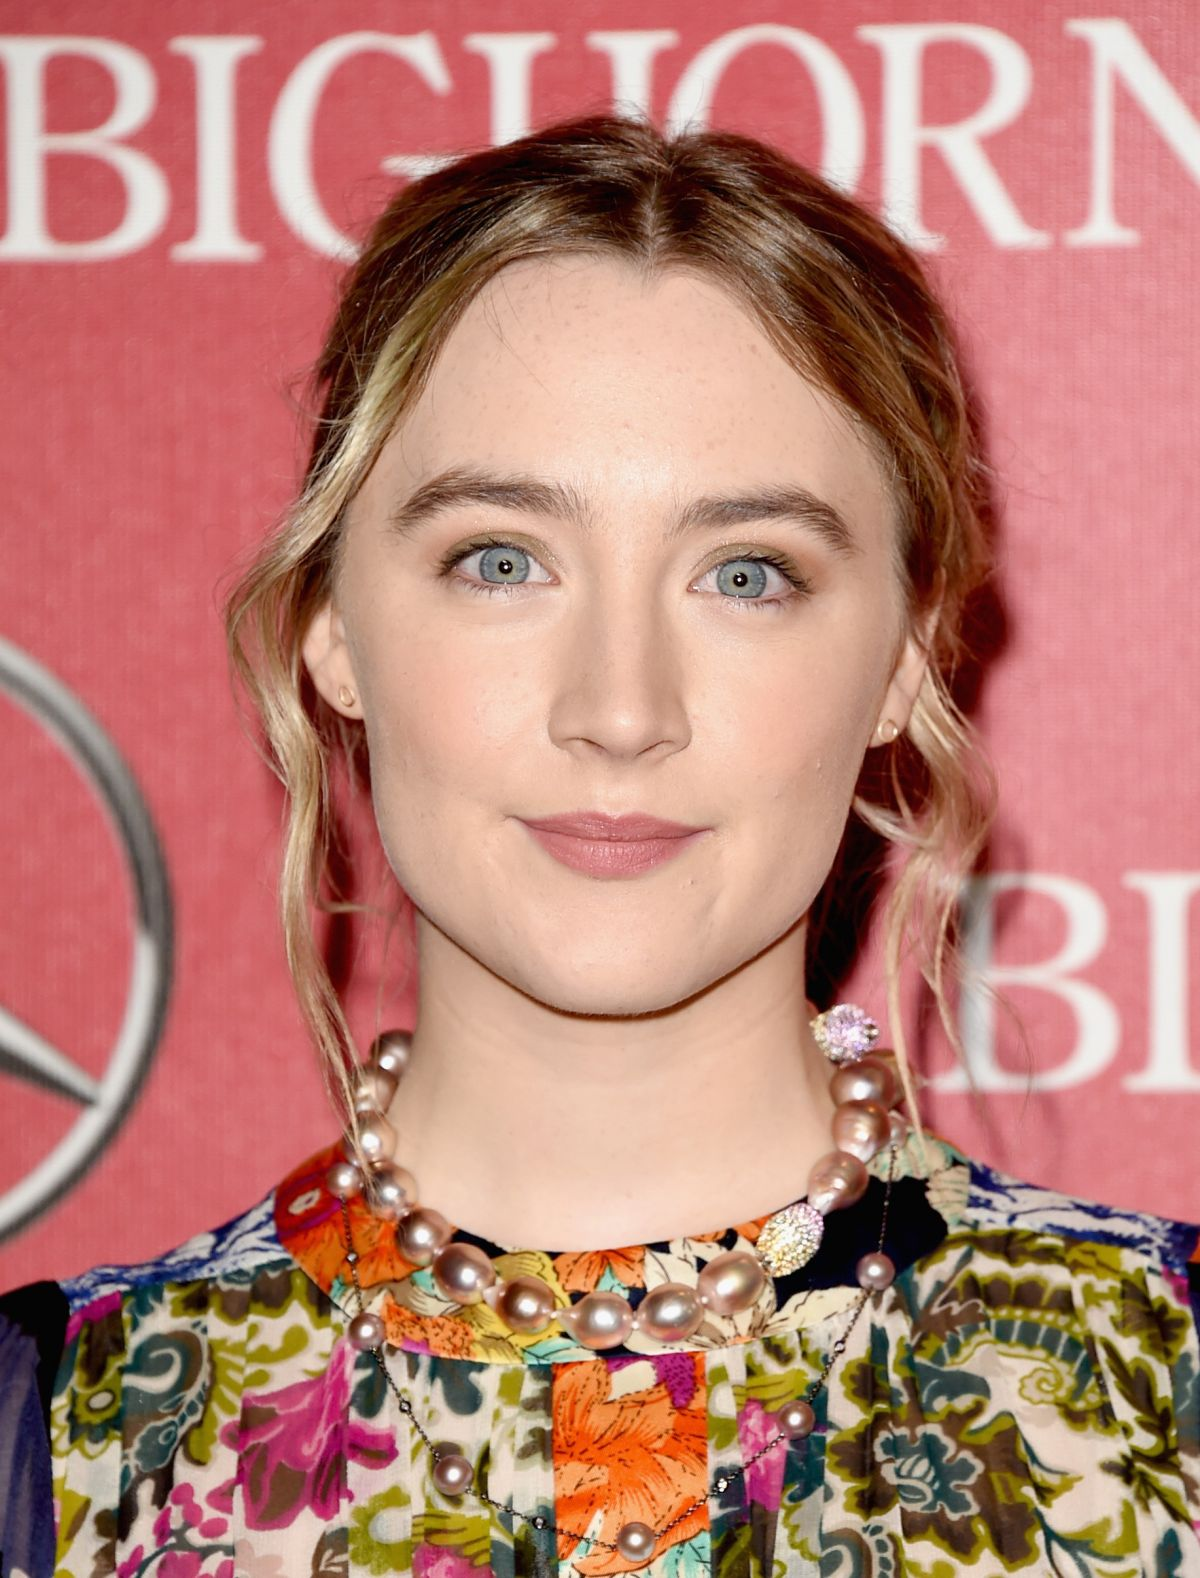 'Brooklyn's' Saoirse Ronan Tapped for Palm Springs Film Fest's International Star Award